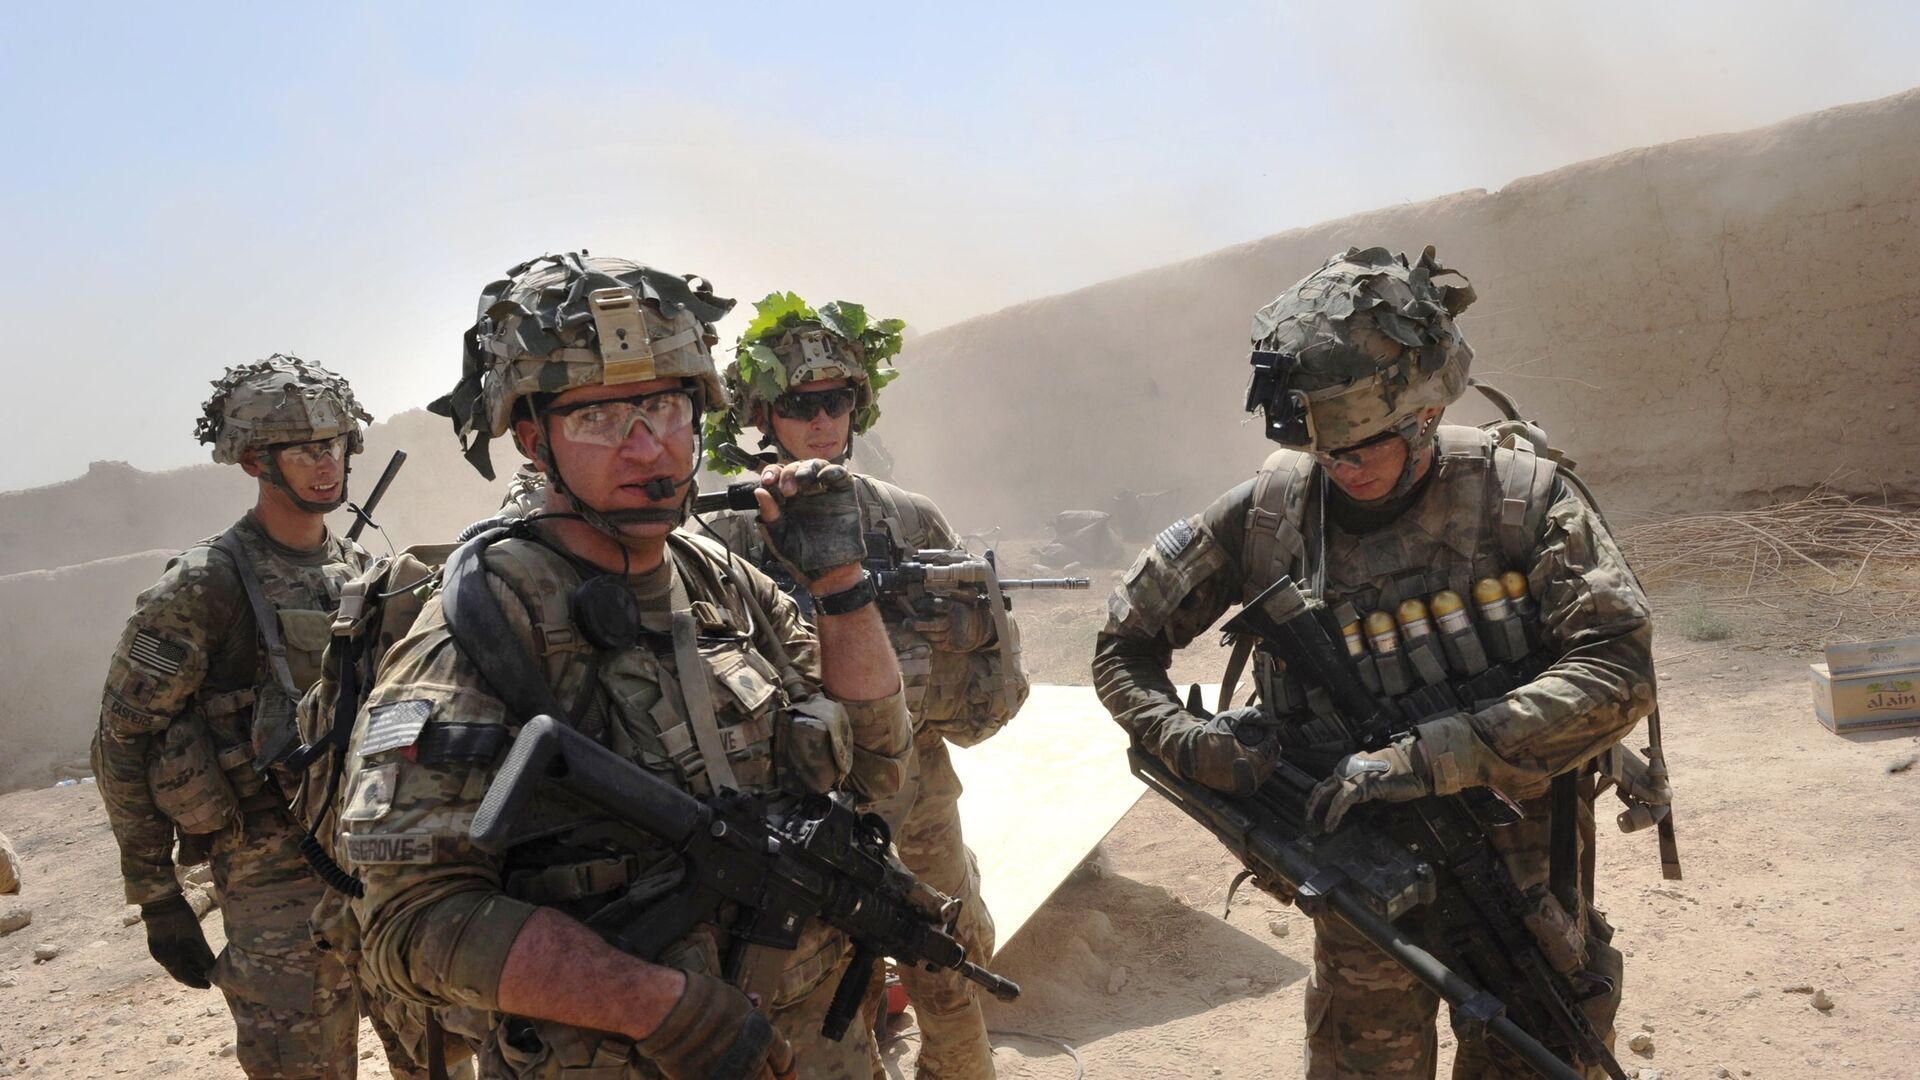 In this photo taken on August 5, 2011, US troops from the Charlie Company, 2-87 Infantry, 3d Brigade Combat Team under Afghanistan's International Security Assistance Force patrols Kandalay village following Taliban attacks on a joint US and Afghan National Army checkpoint protecting the western area of Kandalay village. - Sputnik International, 1920, 23.08.2021